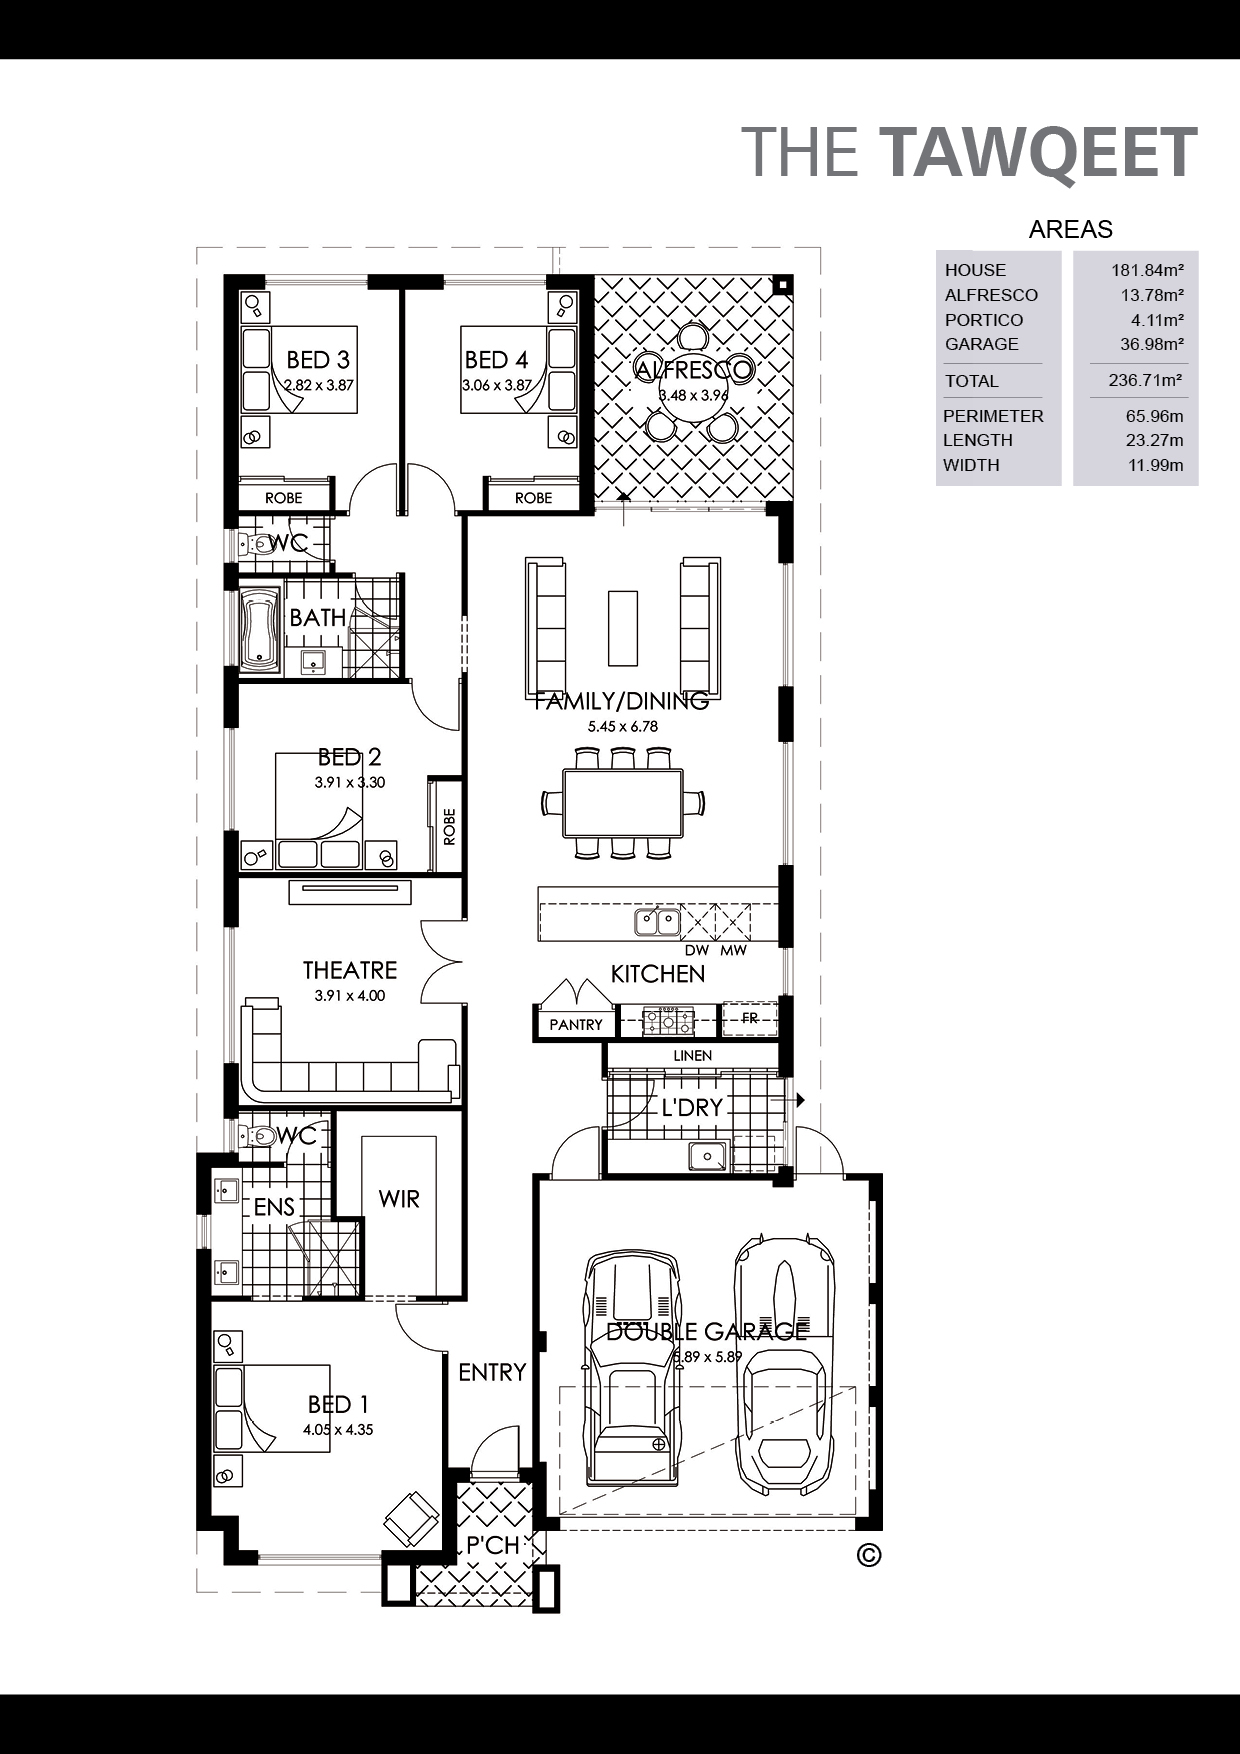 The Tawqeet Floorplan